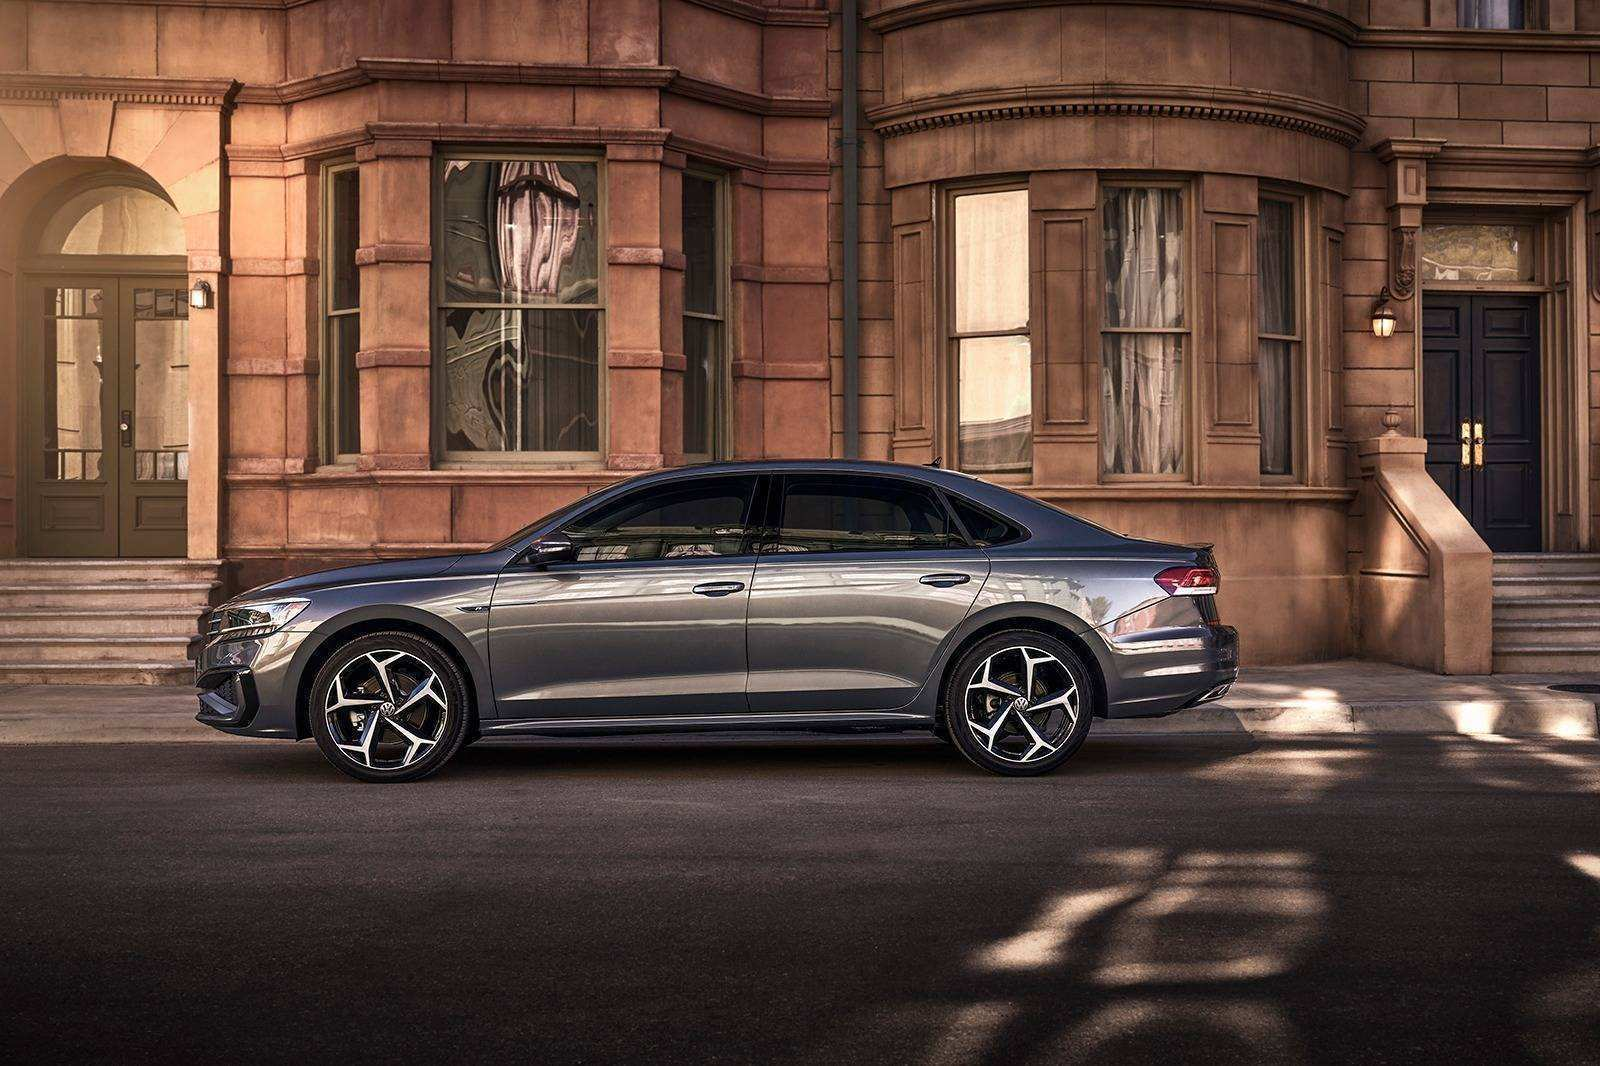 88 A Volkswagen Passat 2020 Price Release Date And Concept